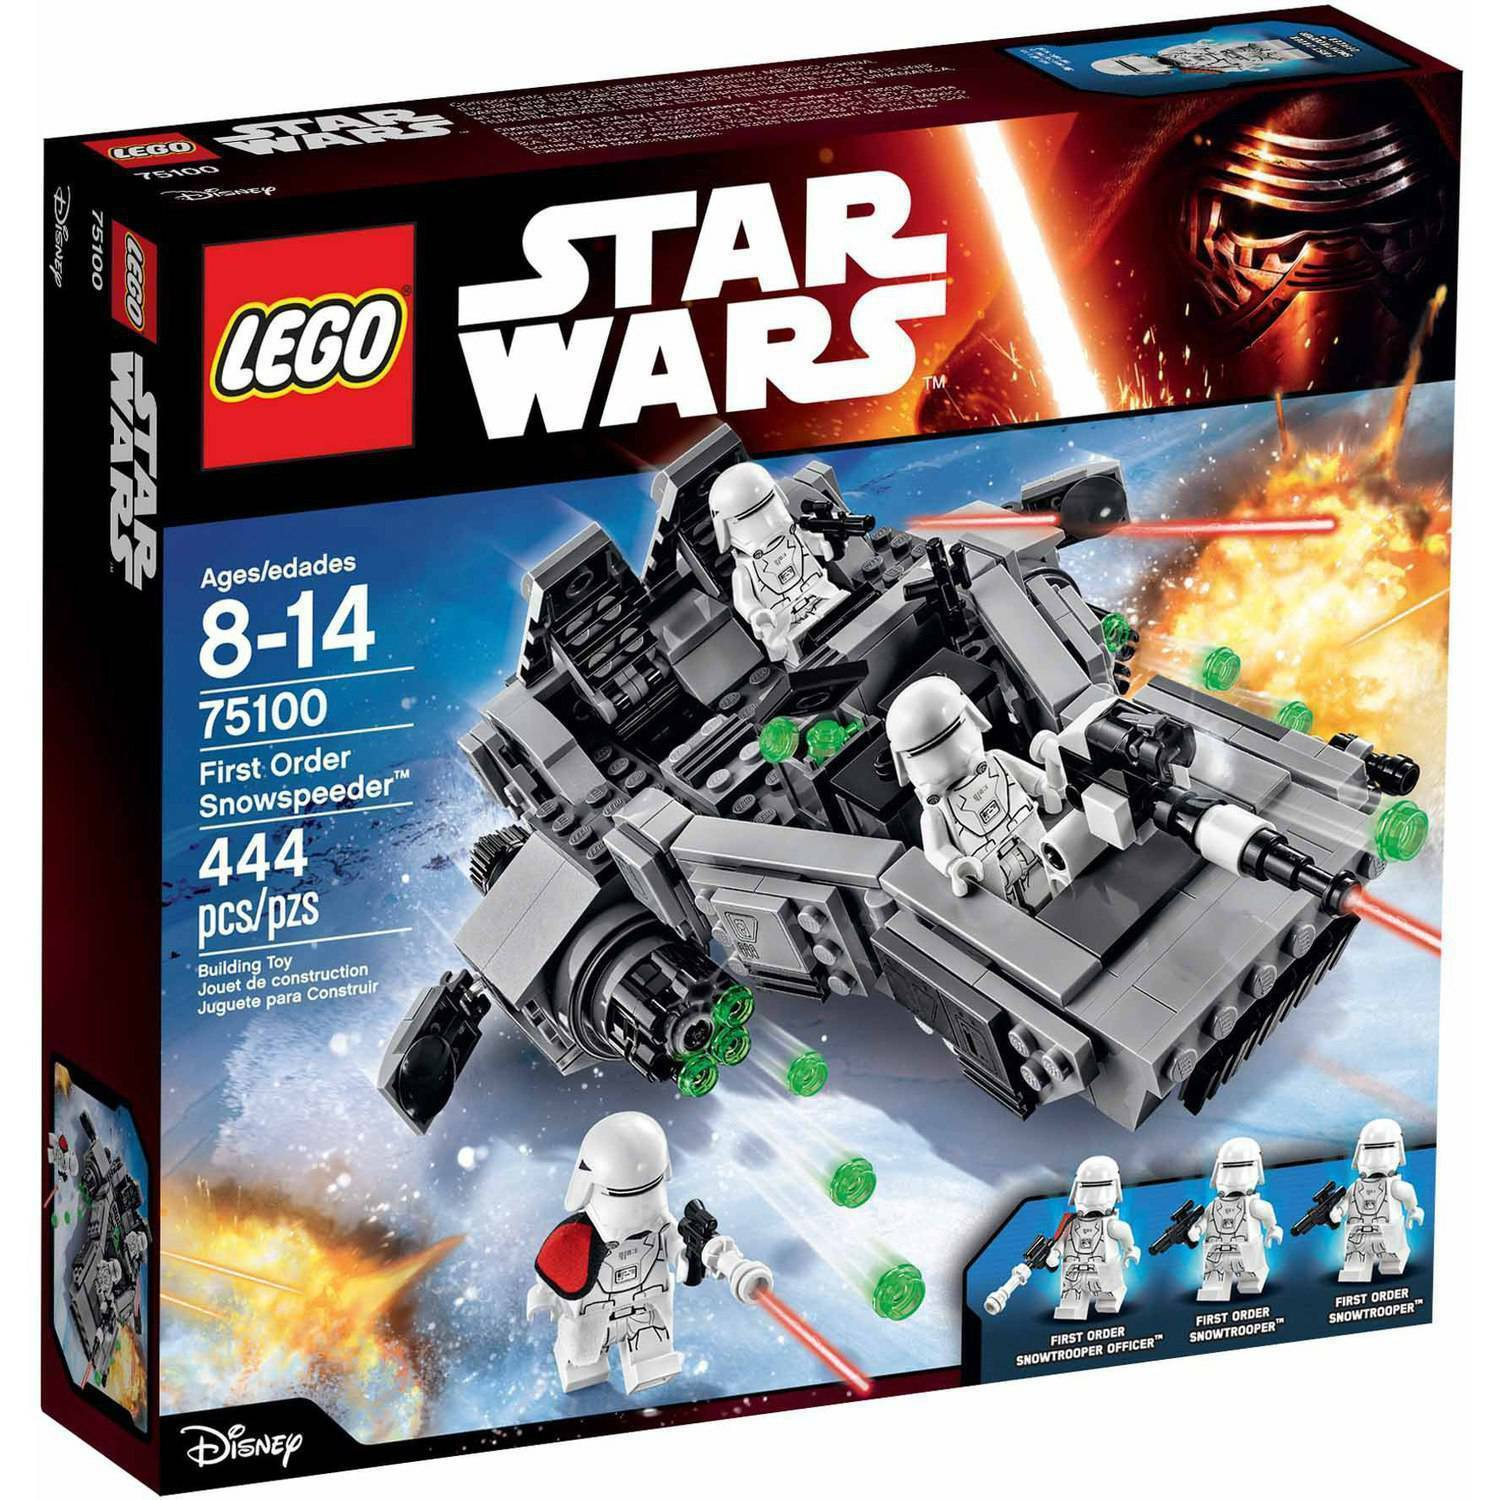 75100 75100 75100 FIRST ORDER SNOWSPEEDER star wars lego NEW sealed legos set FORCE AWAKENS de31f3